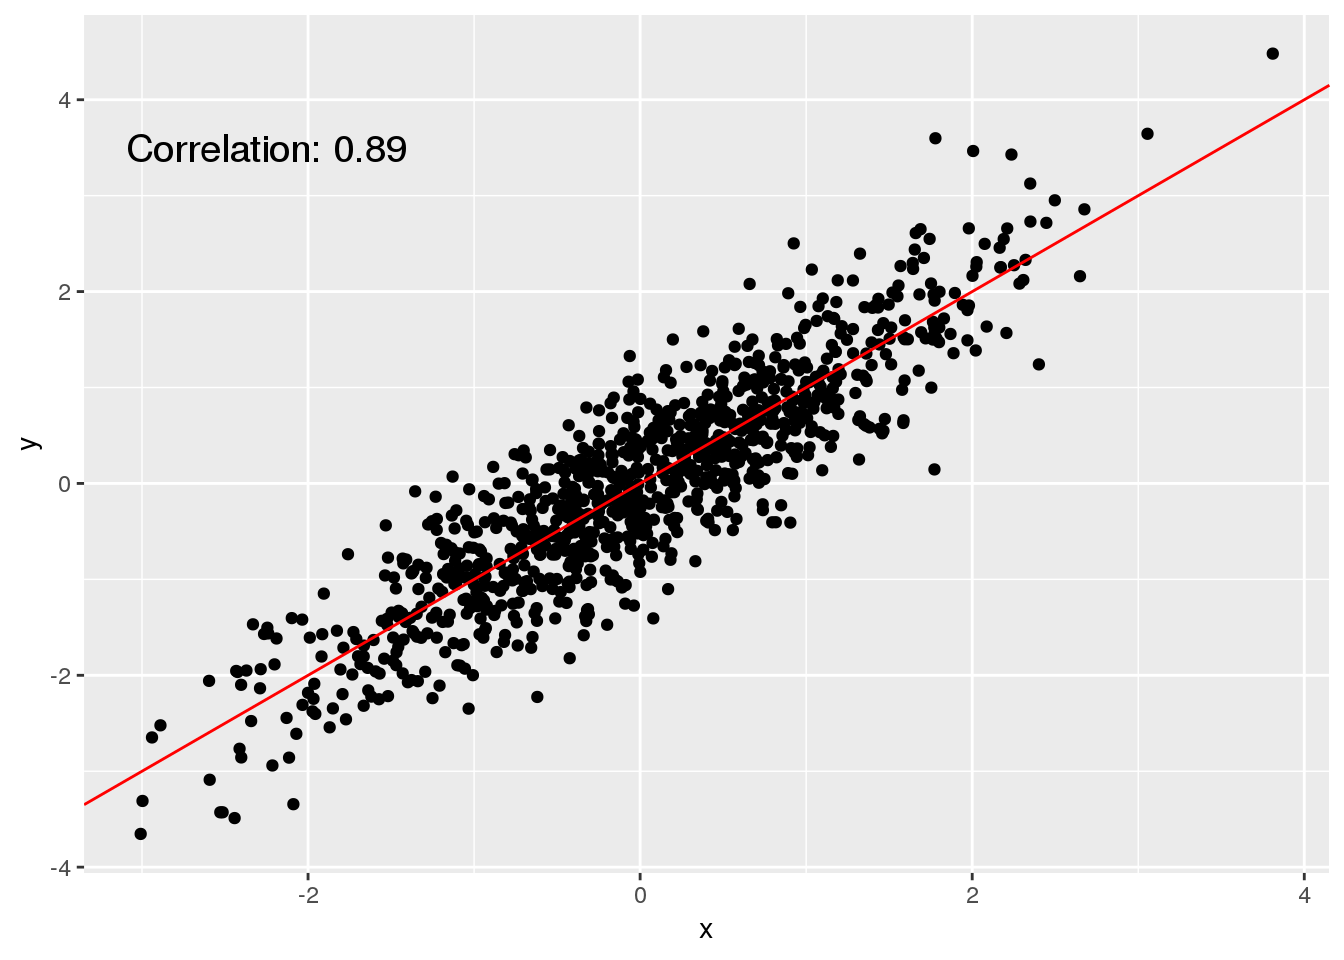 Visualizing Individual Data Points Using Scatter Plots